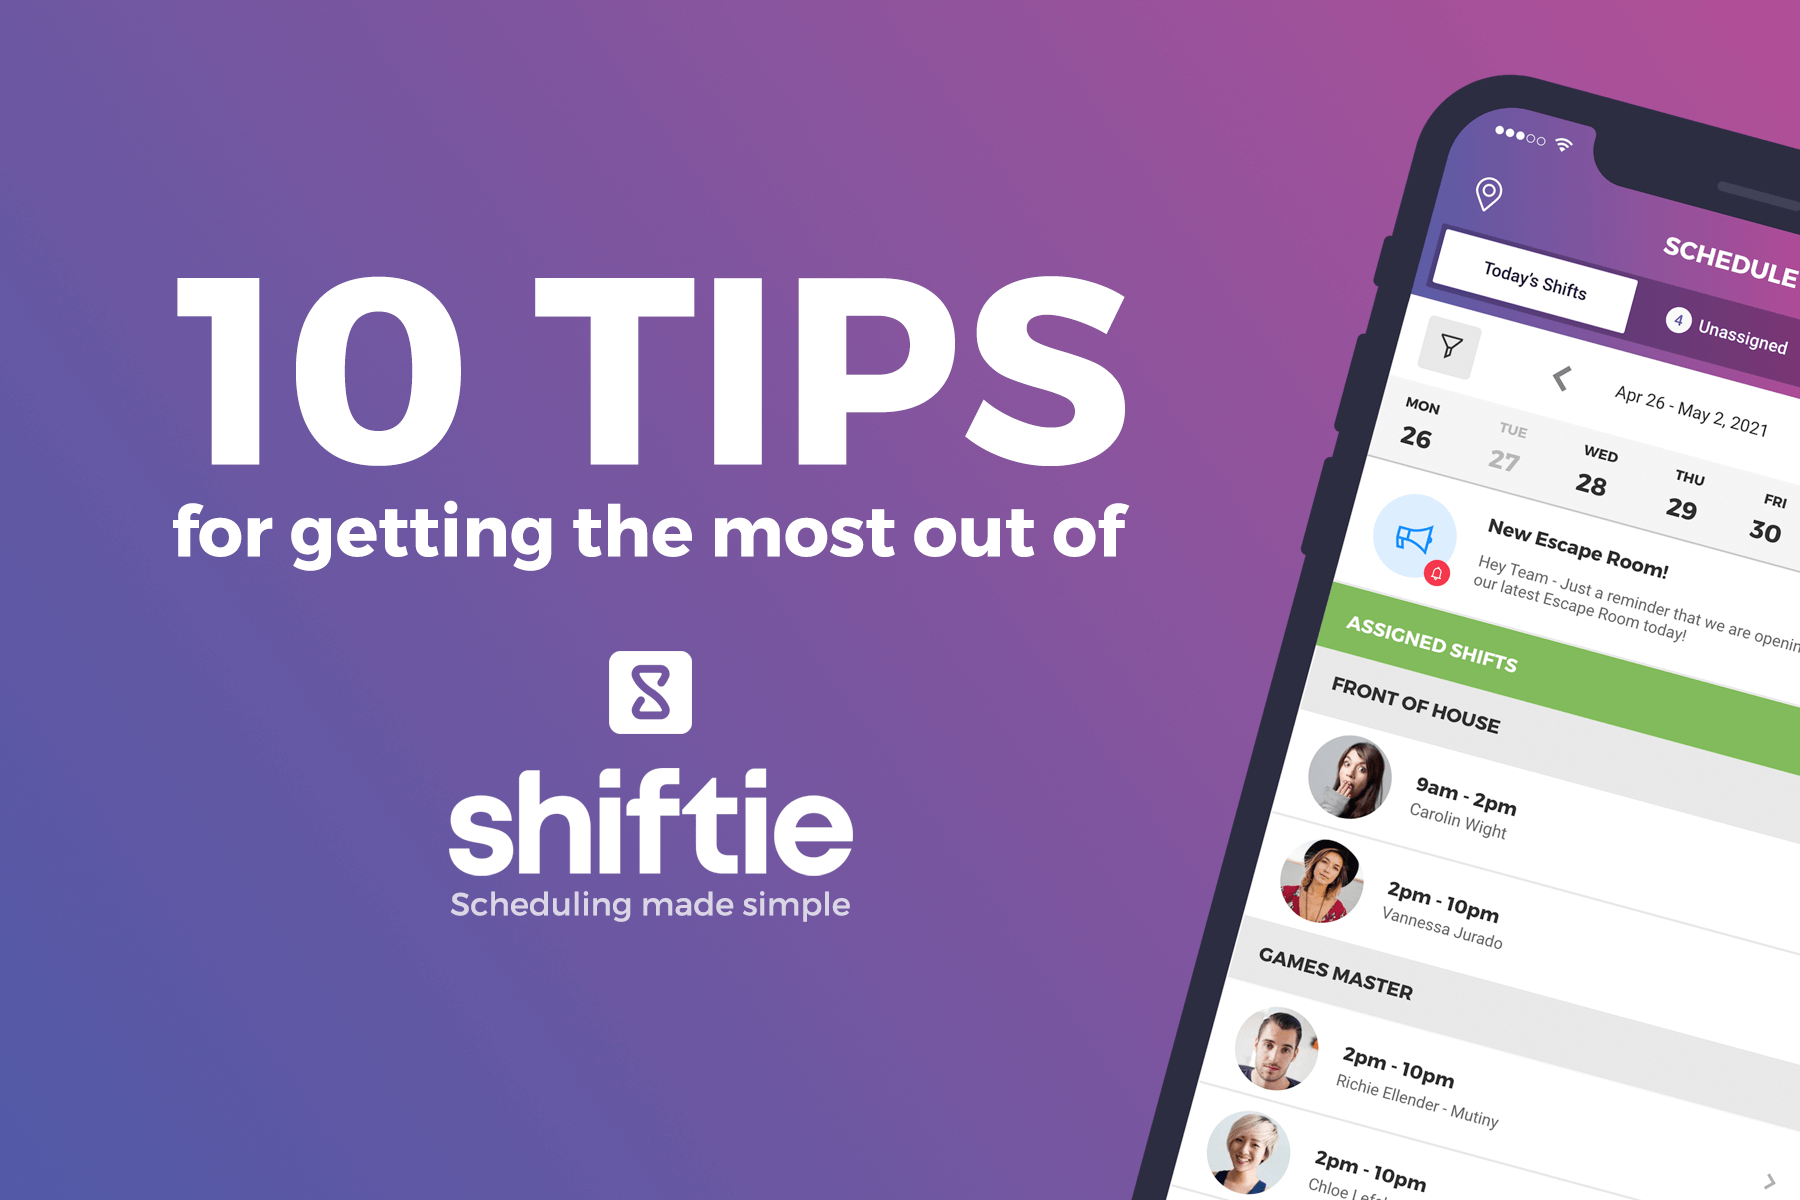 Our Top 10 Tips For Getting The Most Out Of Shiftie